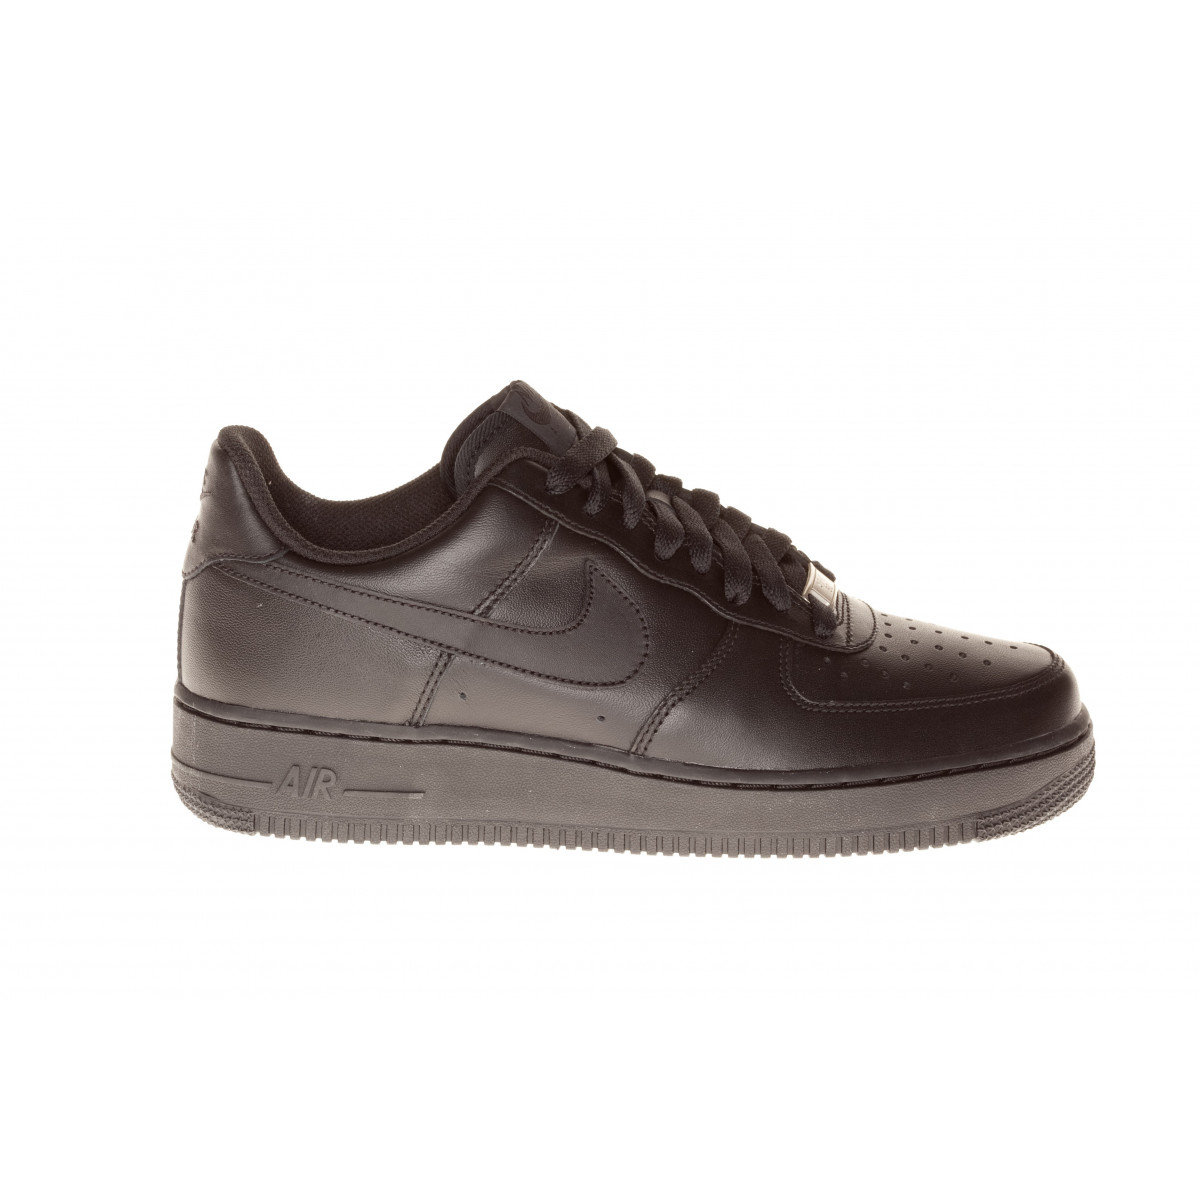 Downtownstock Force Ref315122 1 Nike 001 com Air Low Basket dxBhrCtsQ